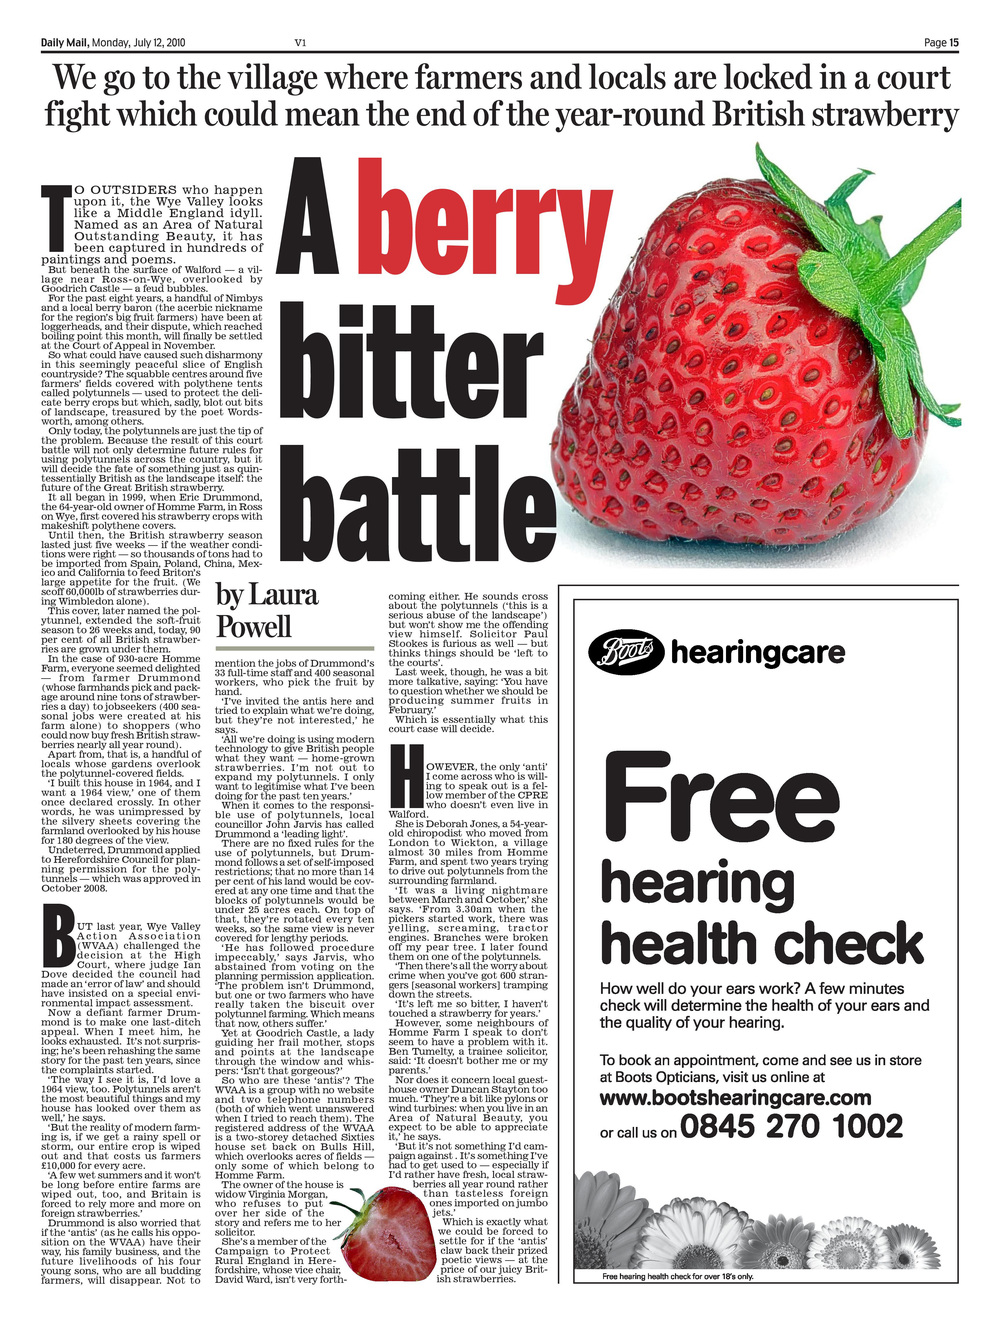 A berry bitter battle: Strawberry wars   Daily Mail